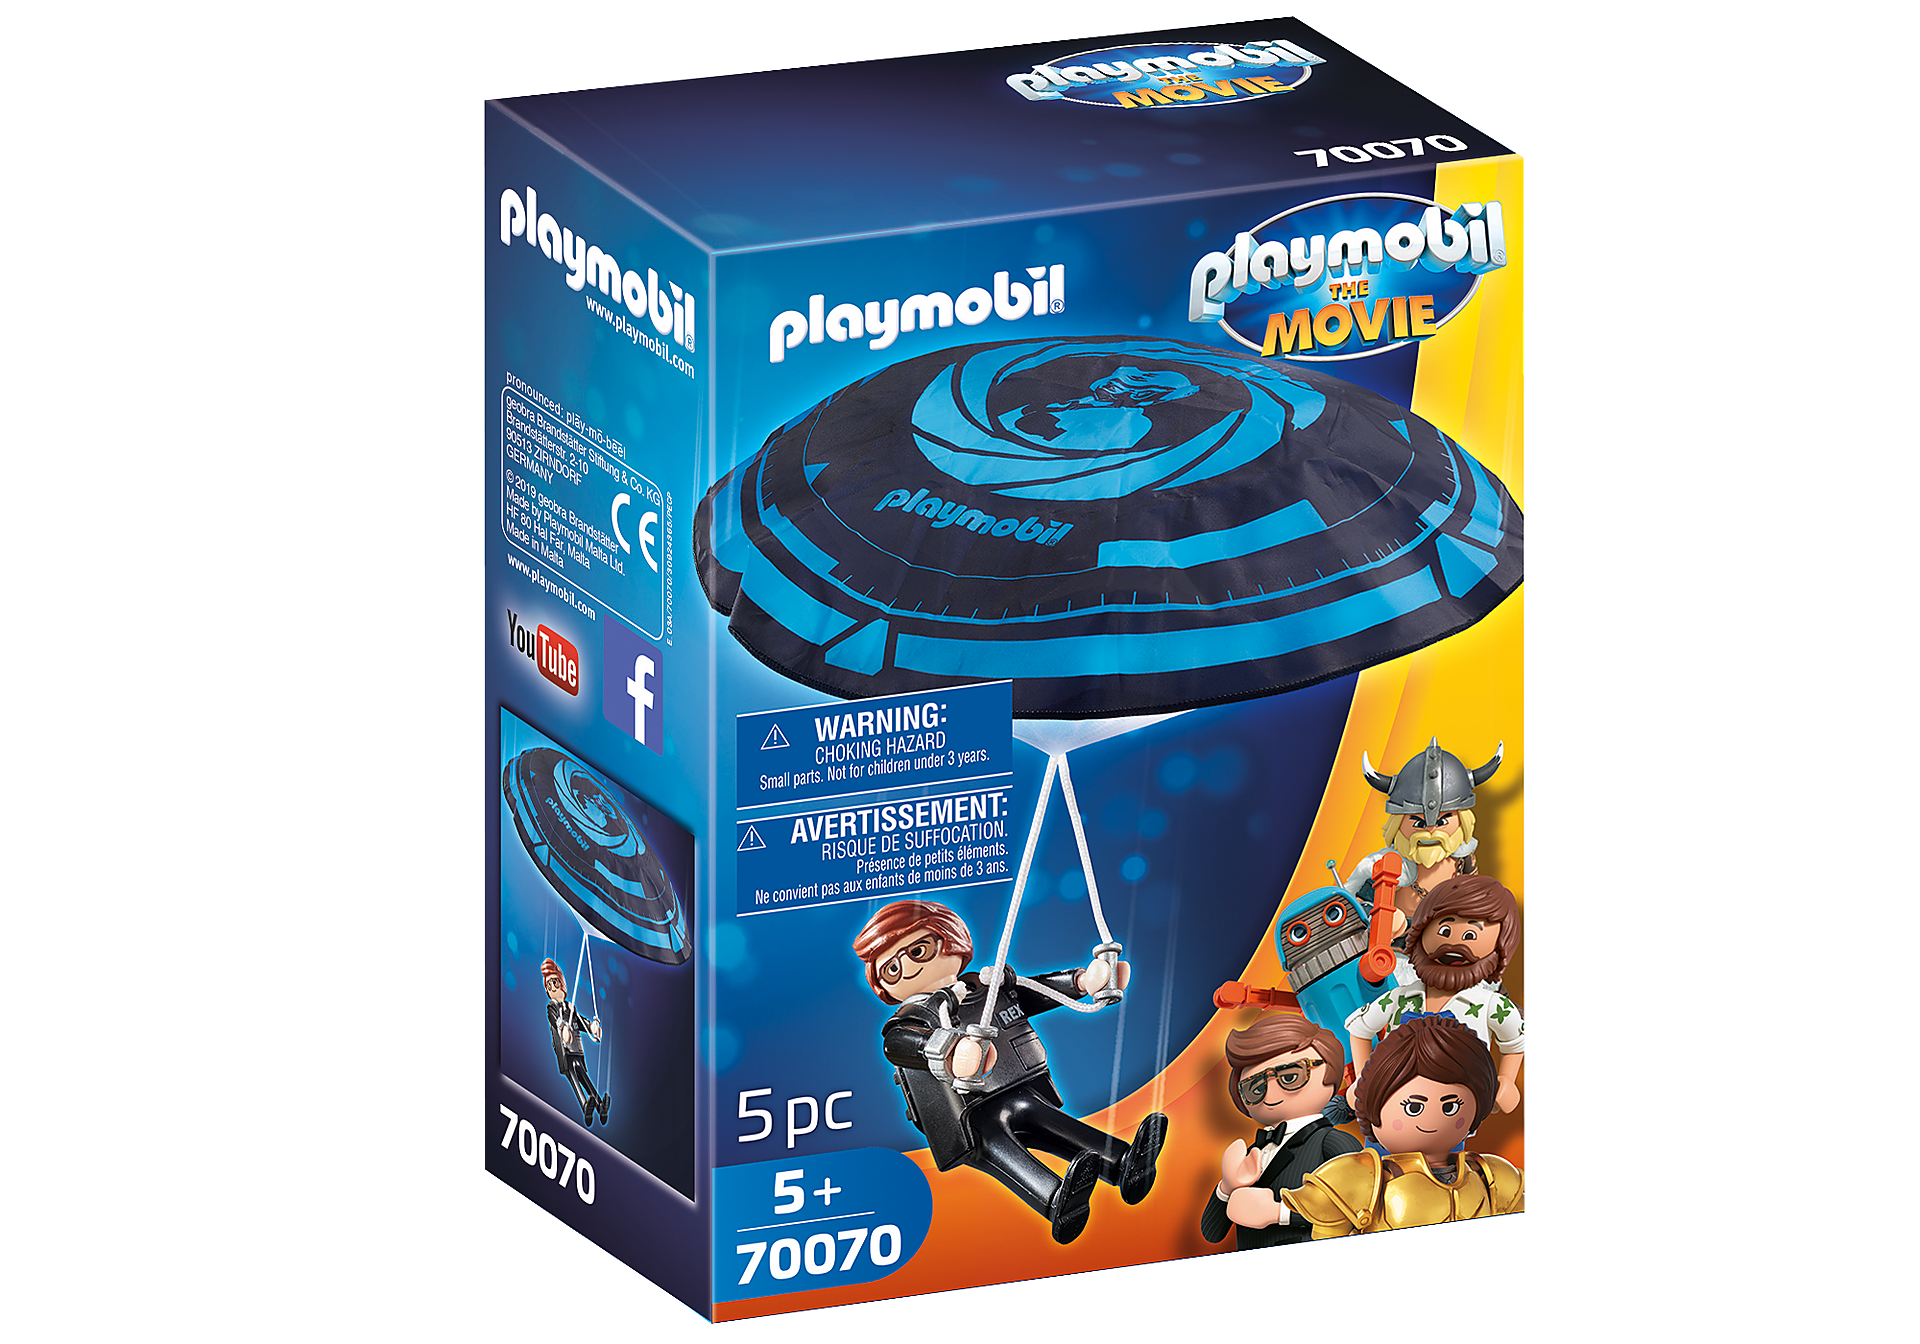 http://media.playmobil.com/i/playmobil/70070_product_box_front/PLAYMOBIL:THE MOVIE Rex Dasher mit Fallschirm